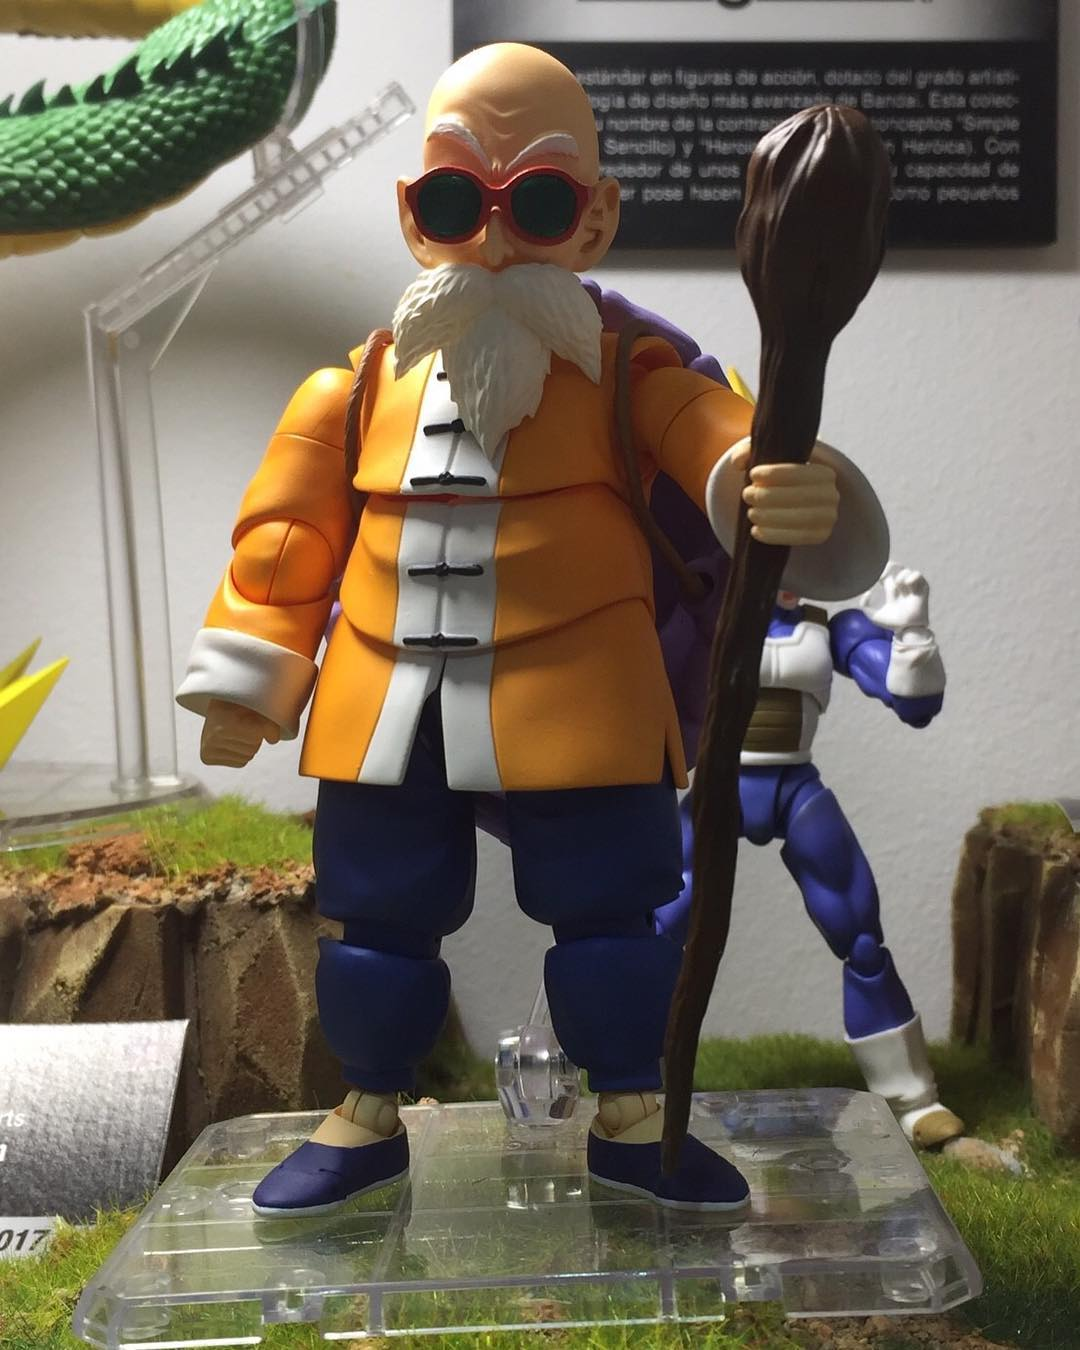 Master Roshi S.H. Figuarts Dragonball Figure Revealed